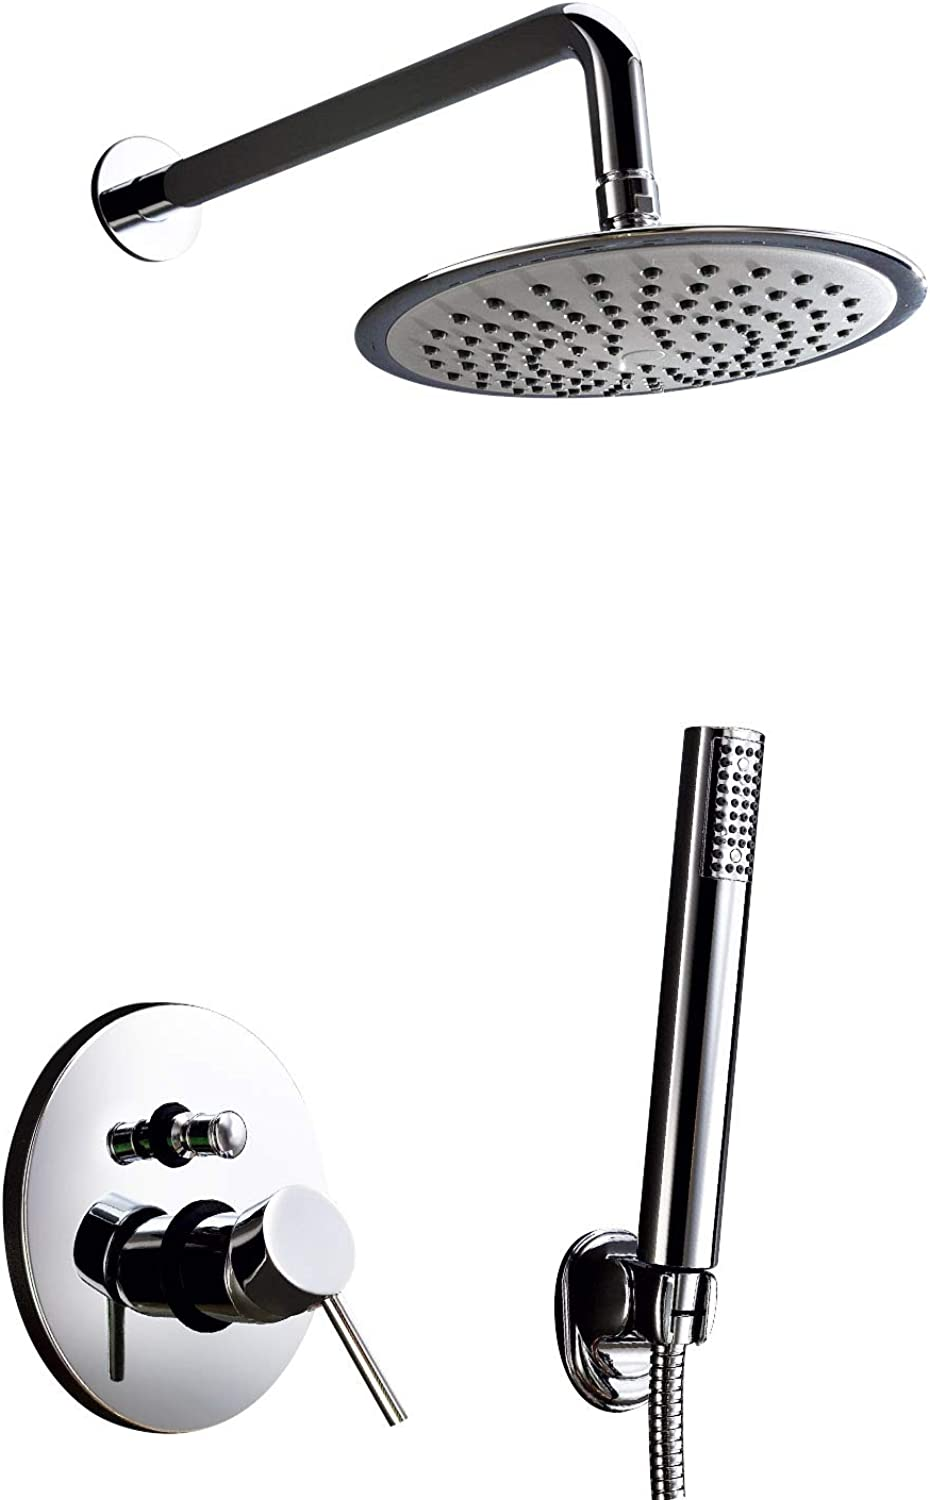 Lightinthebox Contemporary Single Handle Bathroom Shower Faucet System with 8 inch Shower Head + Hand Shower, Chrome Finish Solid Brass Material Ceramic Valve